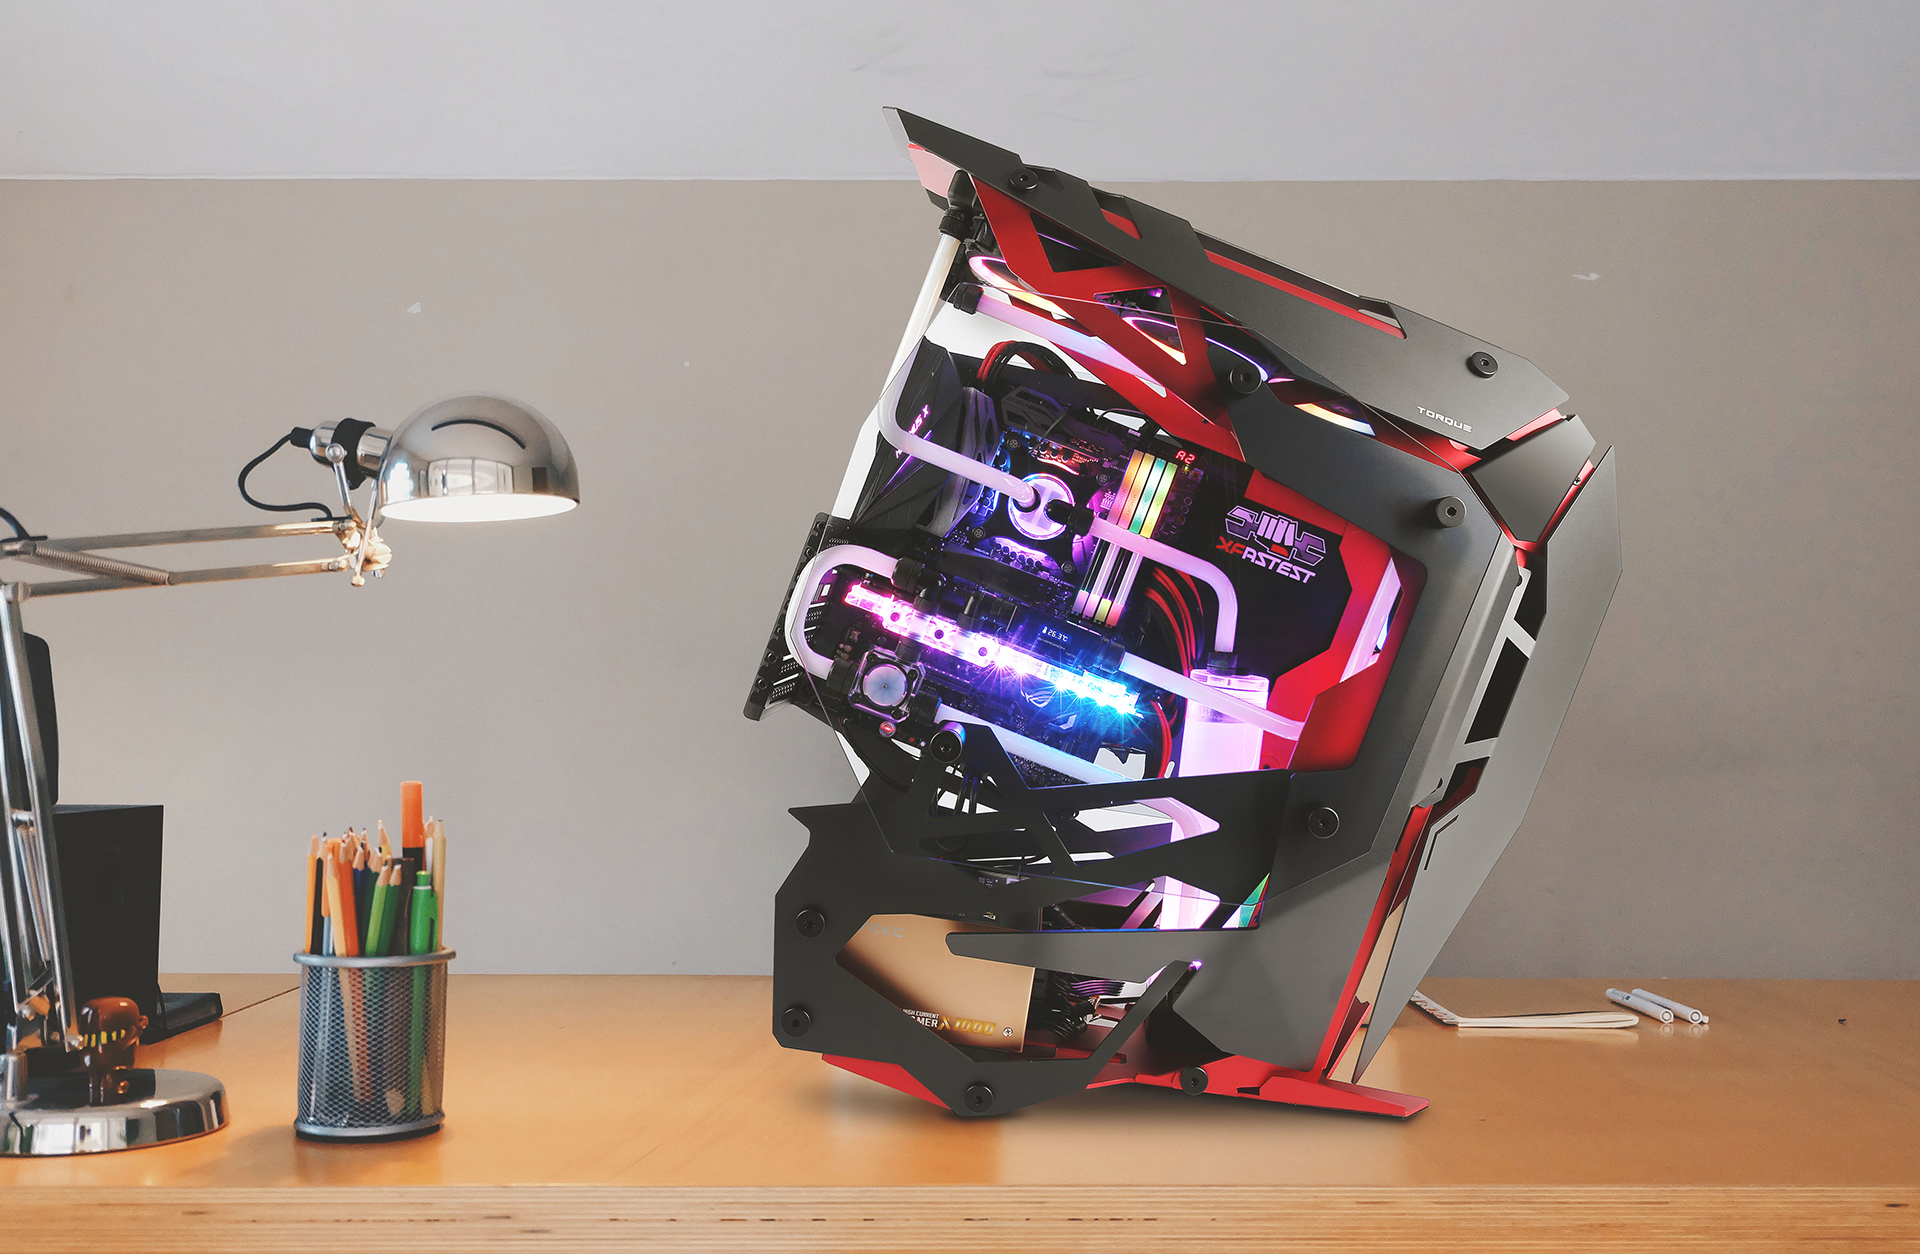 Antec TORQUE on a desk with a container of pencils and a desk lamp.